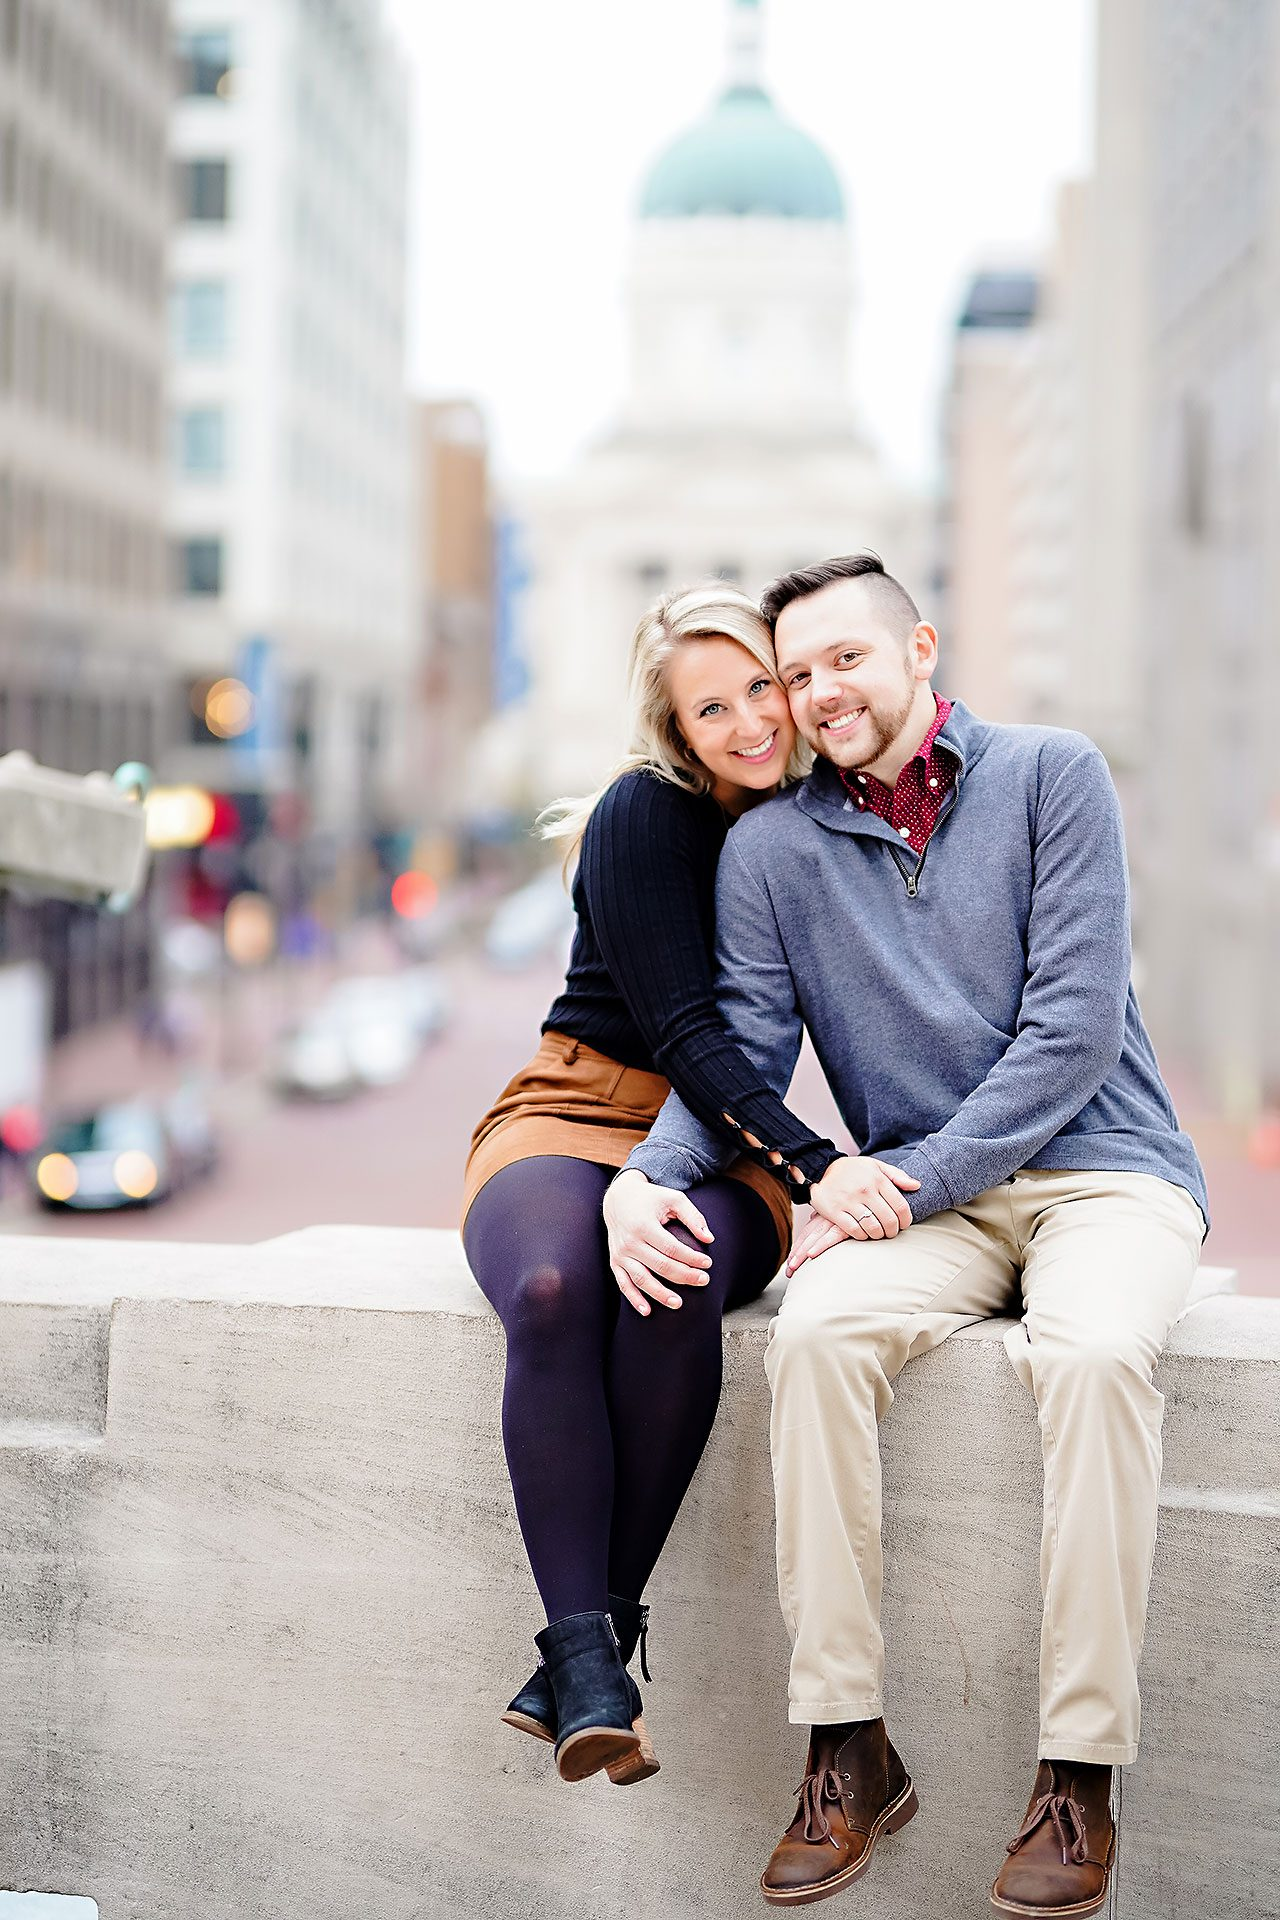 Kristen Jonny Indianapolis Downtown Engagement Session 098